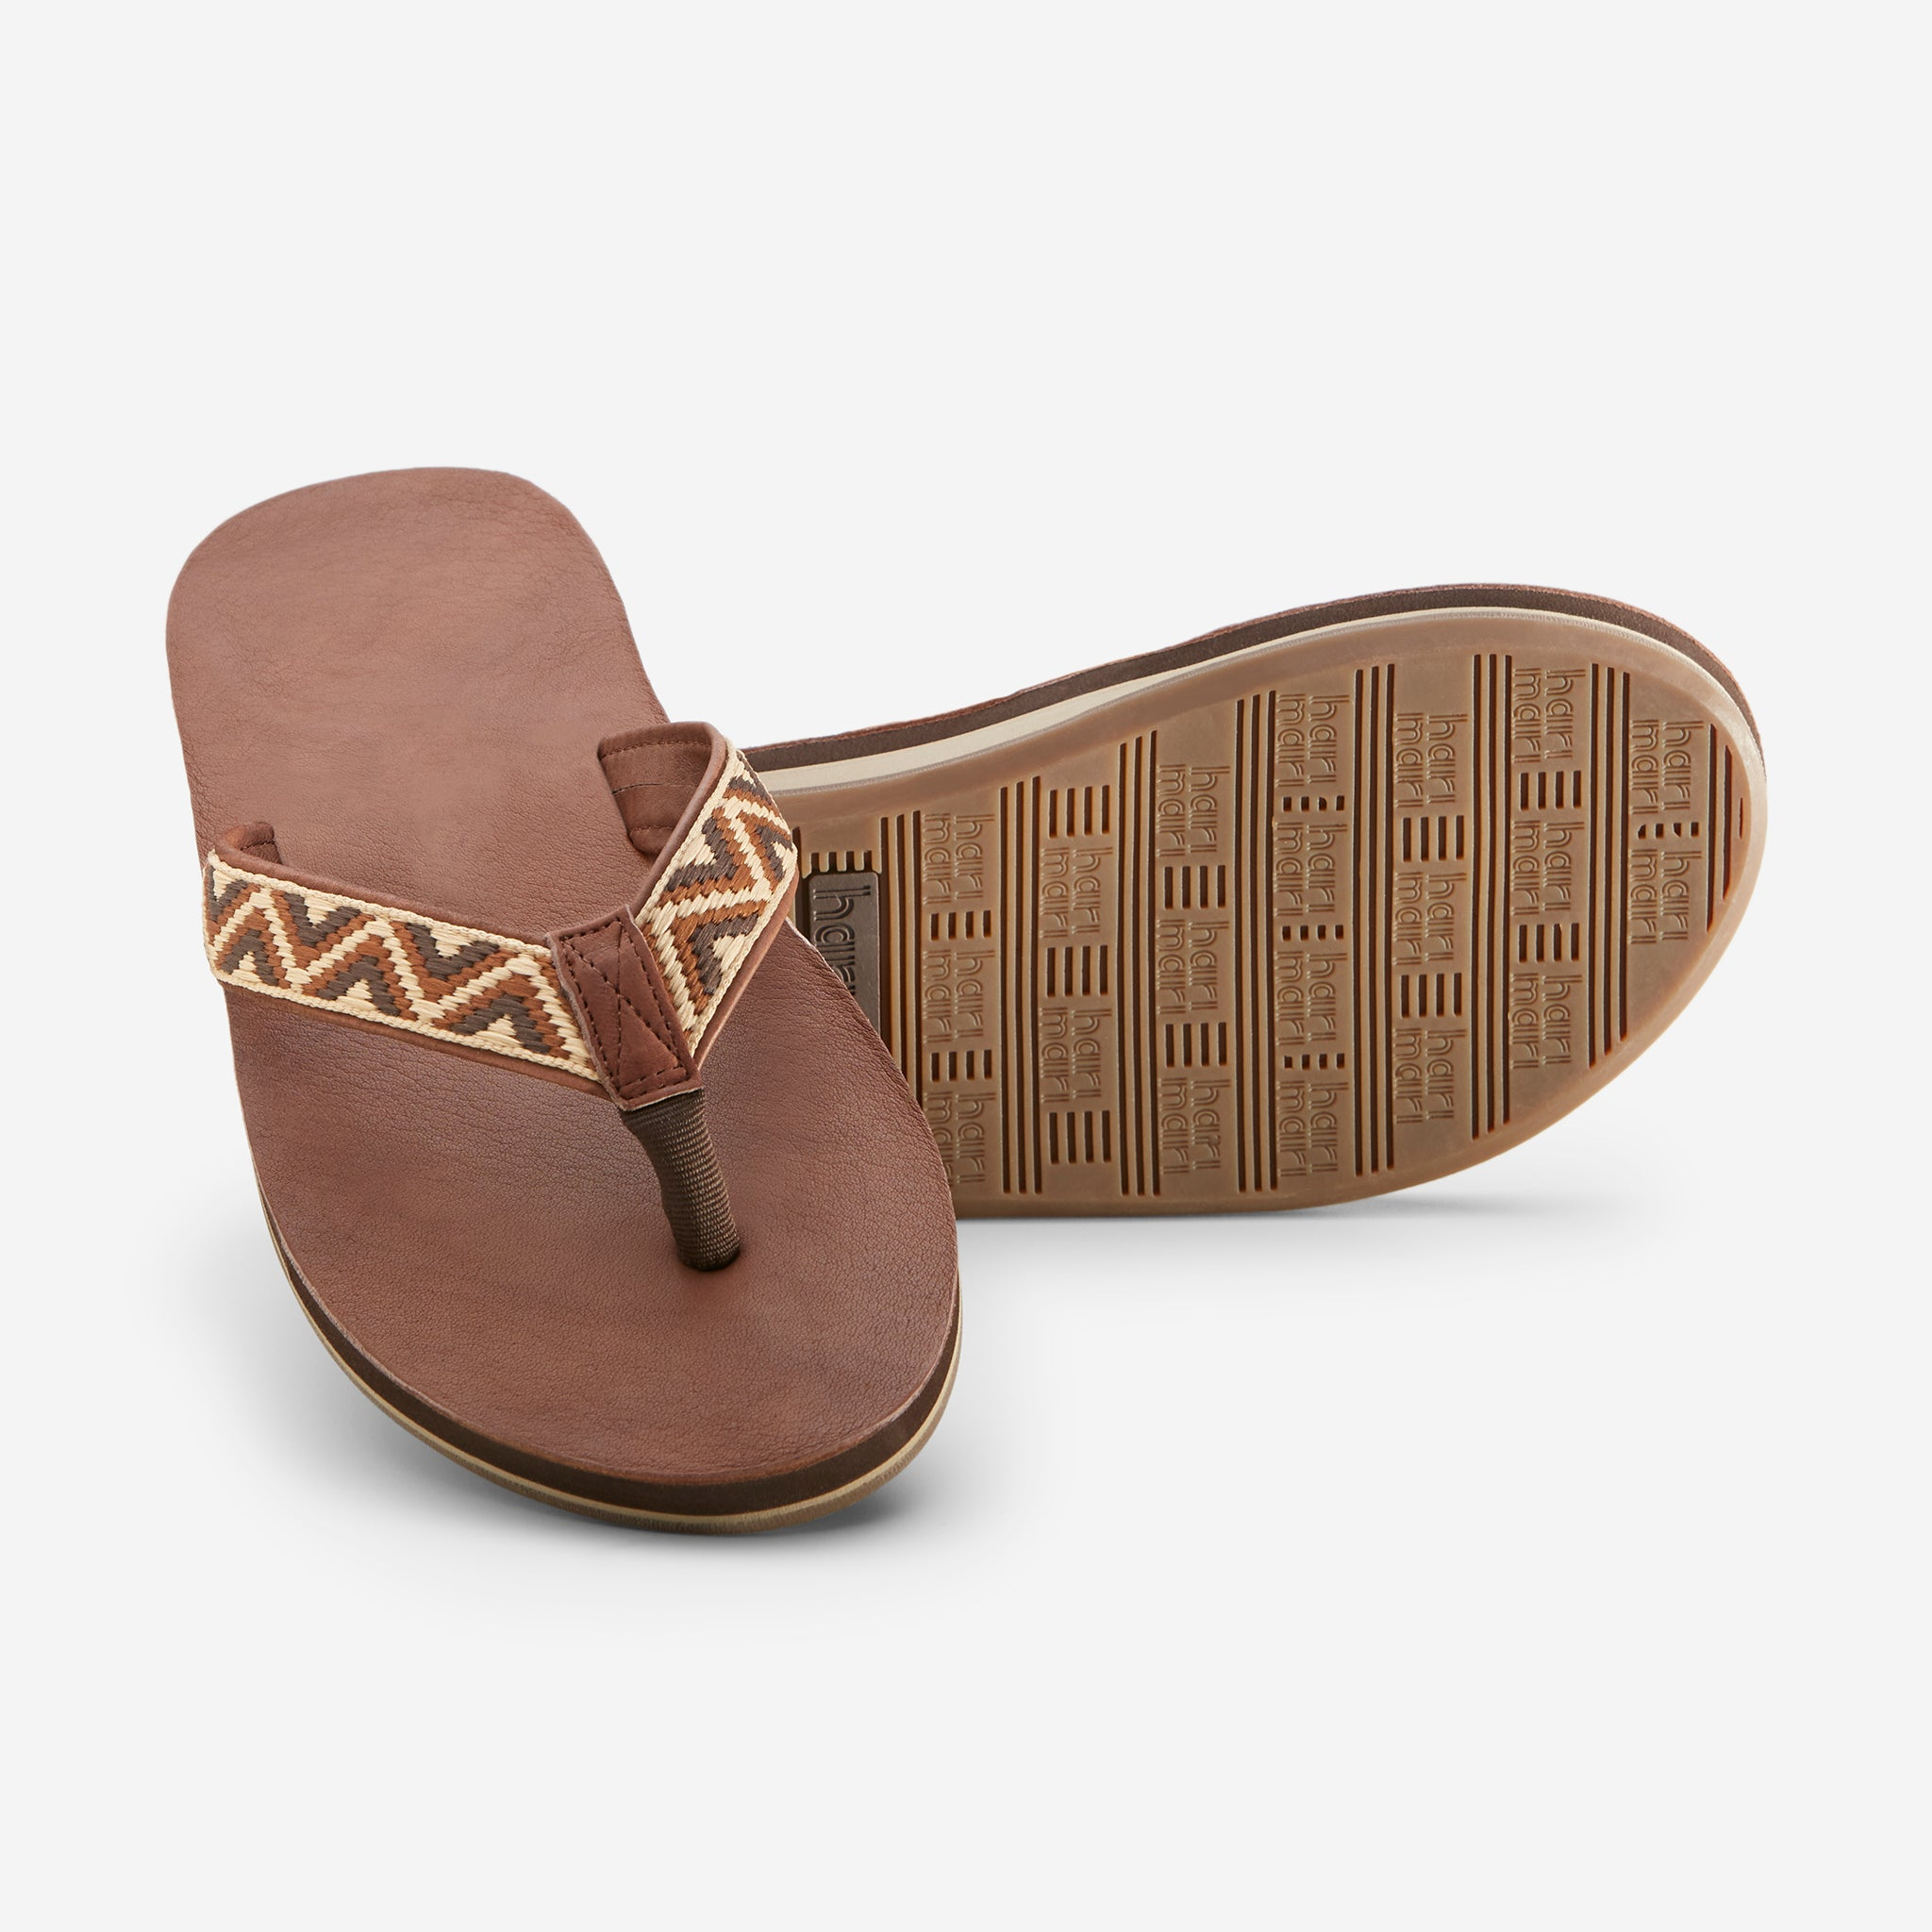 Hari Mari Men'a Fields Camino Flip Flops in chocolate/multi on white background showing flip flop and bottom of flip flop rubber outsole